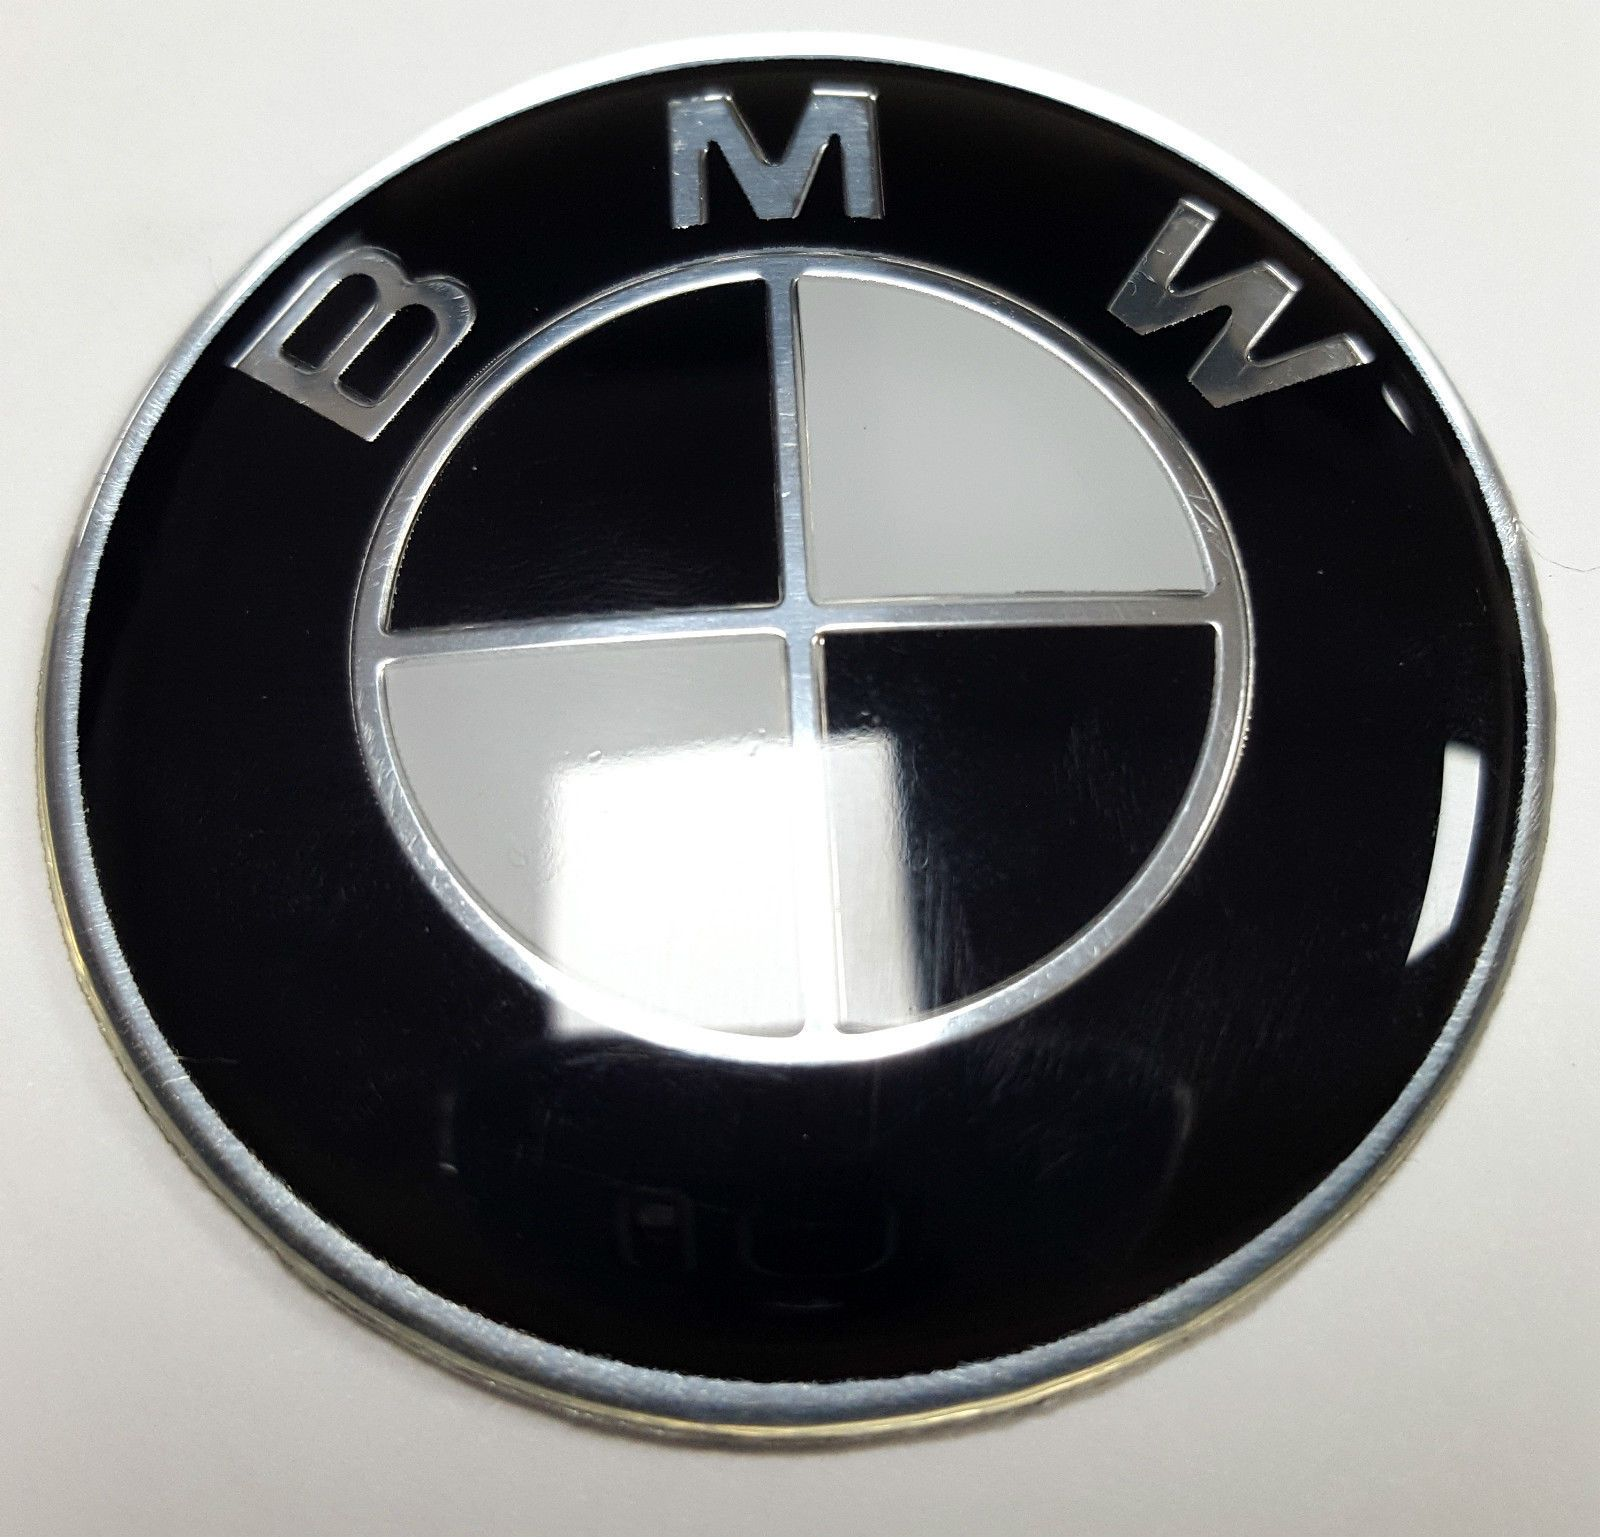 bmw motorcycle logo meaning and history symbol bmw - HD 1600×1537